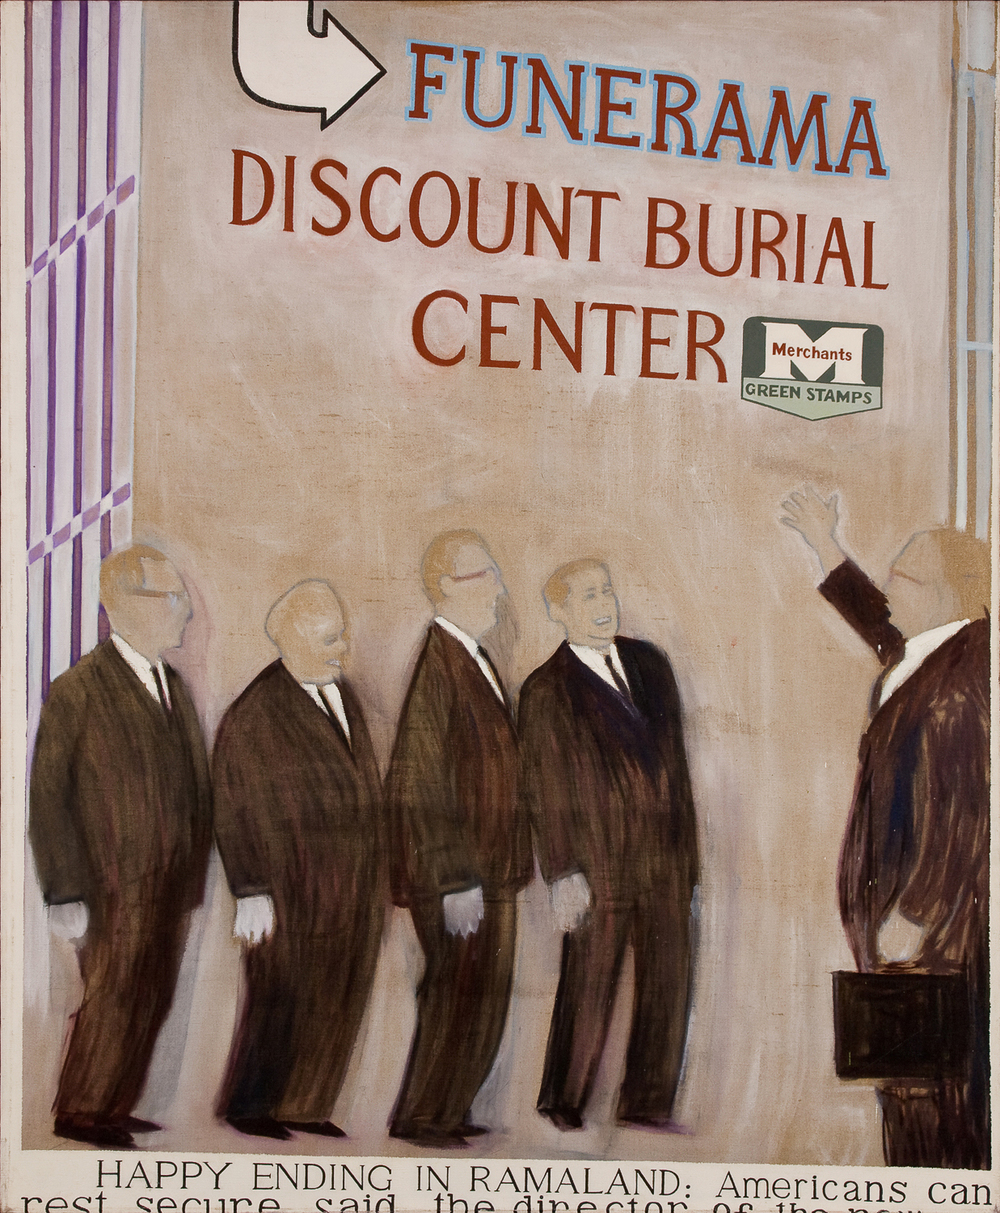 Funerama Discount Burial Center (Flashback)